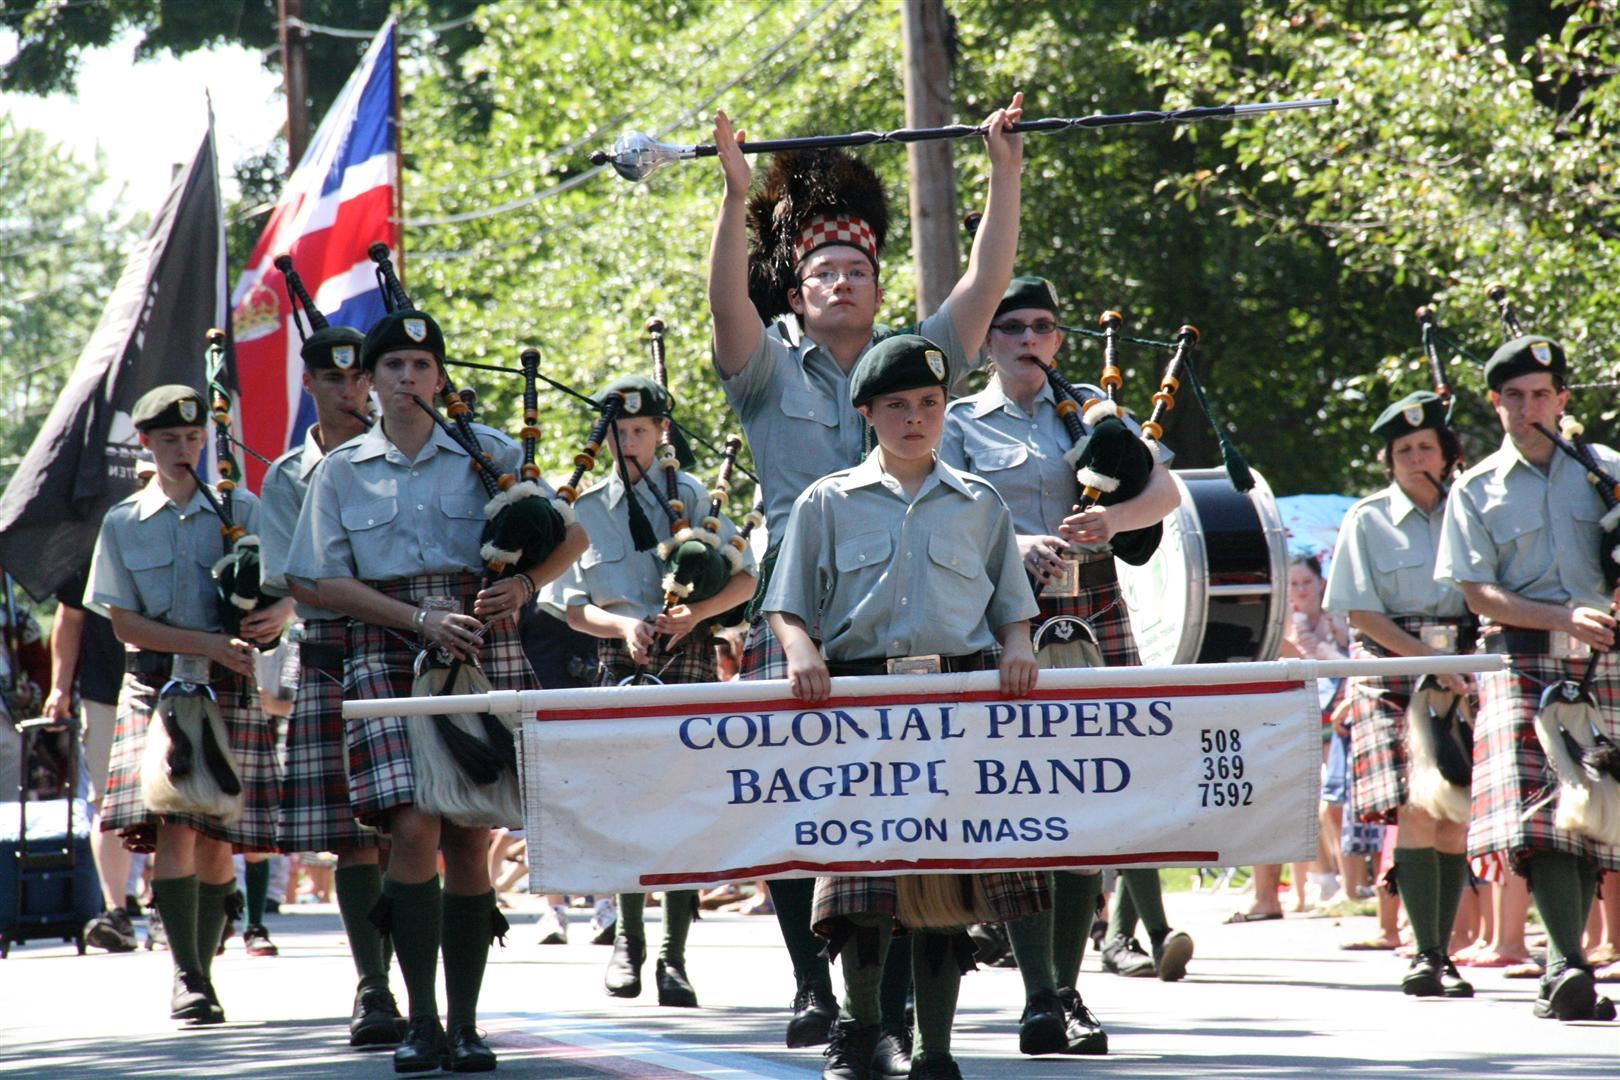 Colonial Pipers Bagpipe Band